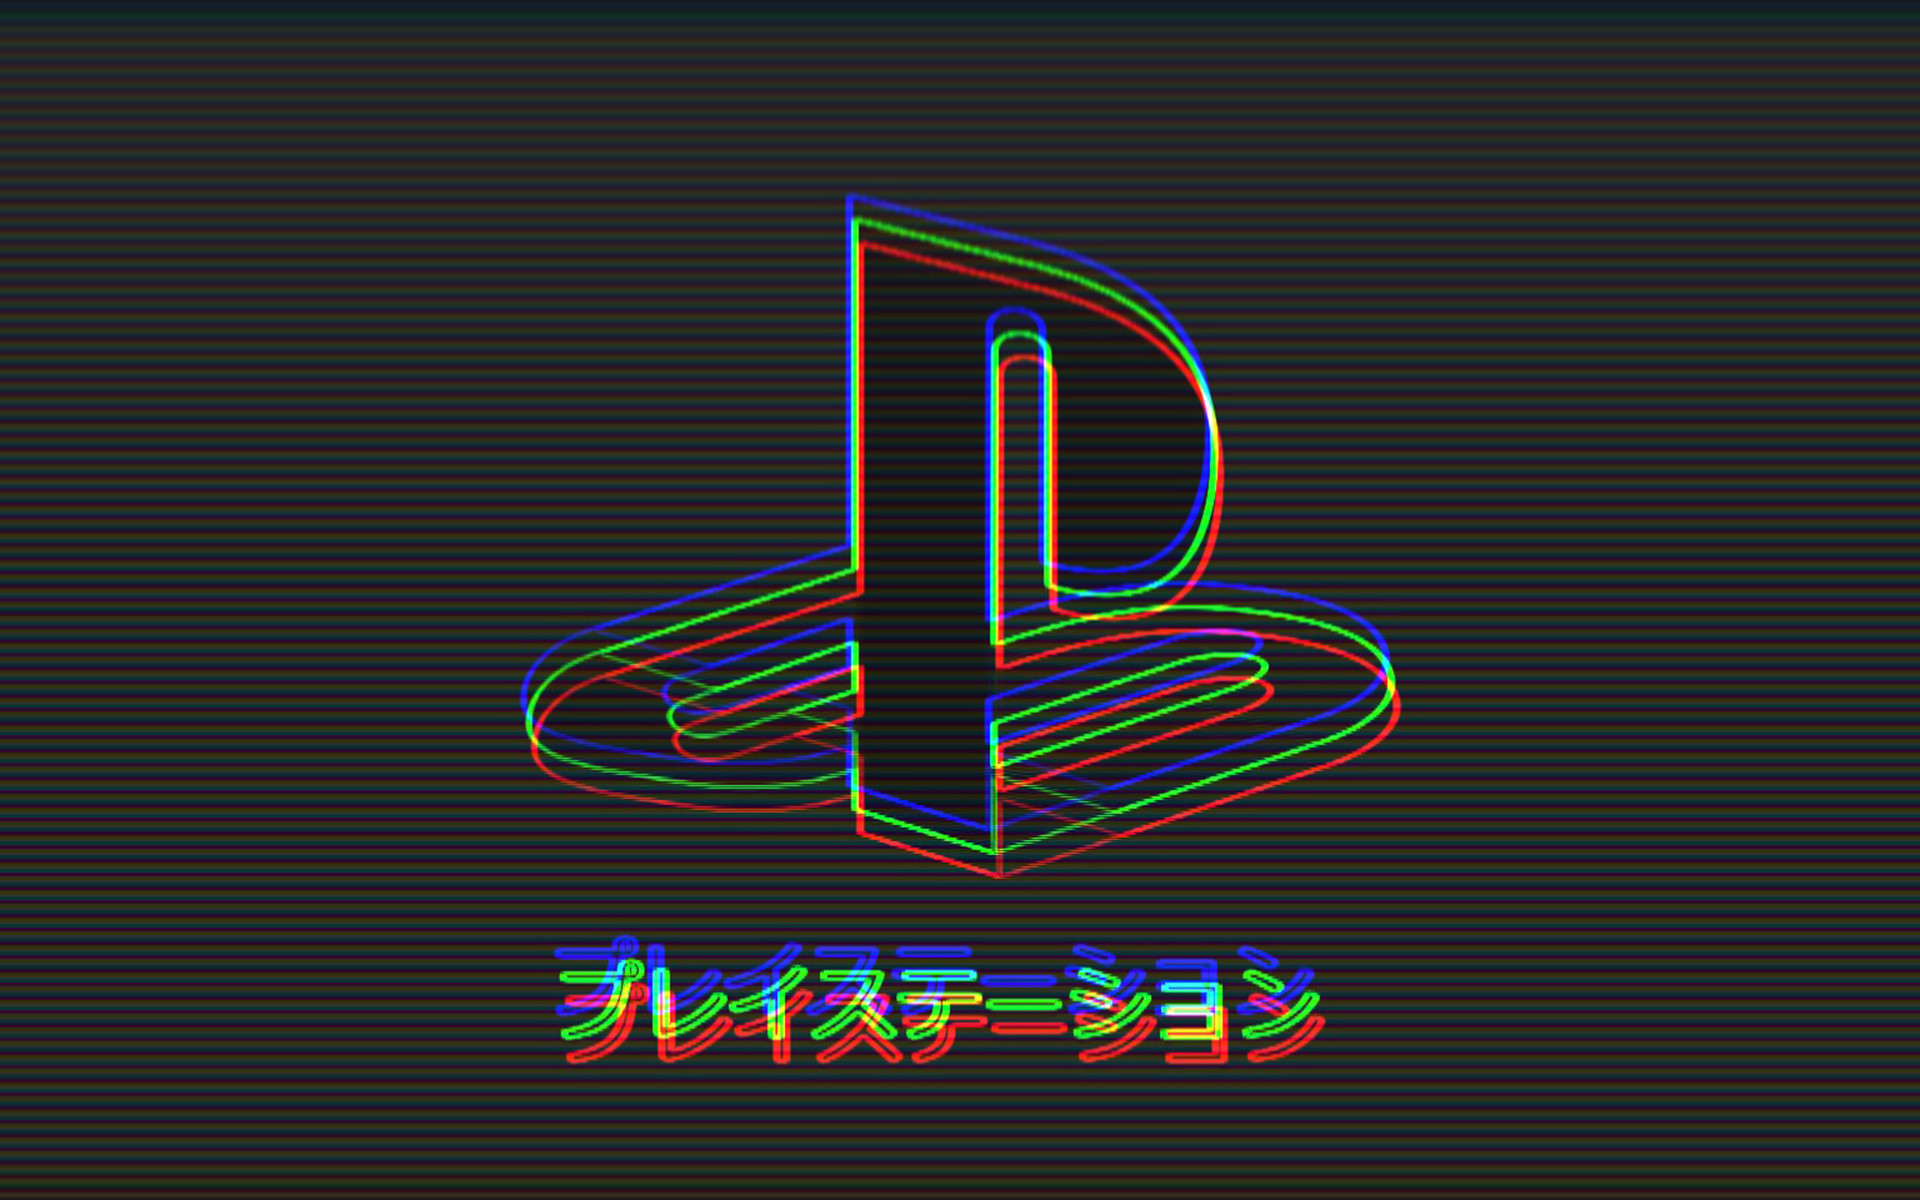 PS4 Background Image